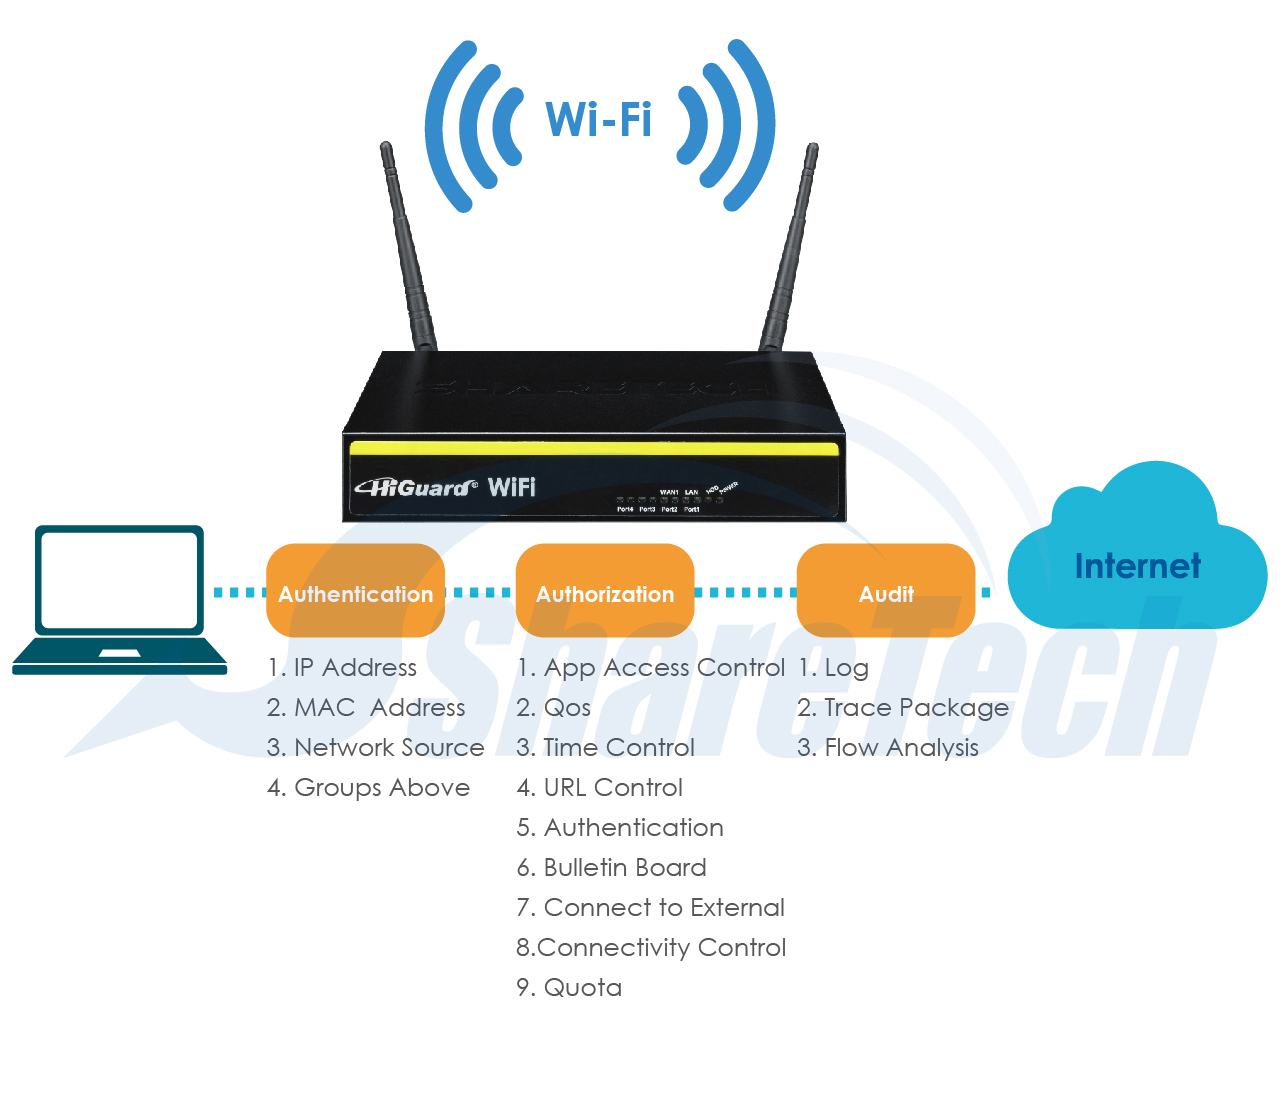 Higuard Wifi Wireless Network Connection Diagram